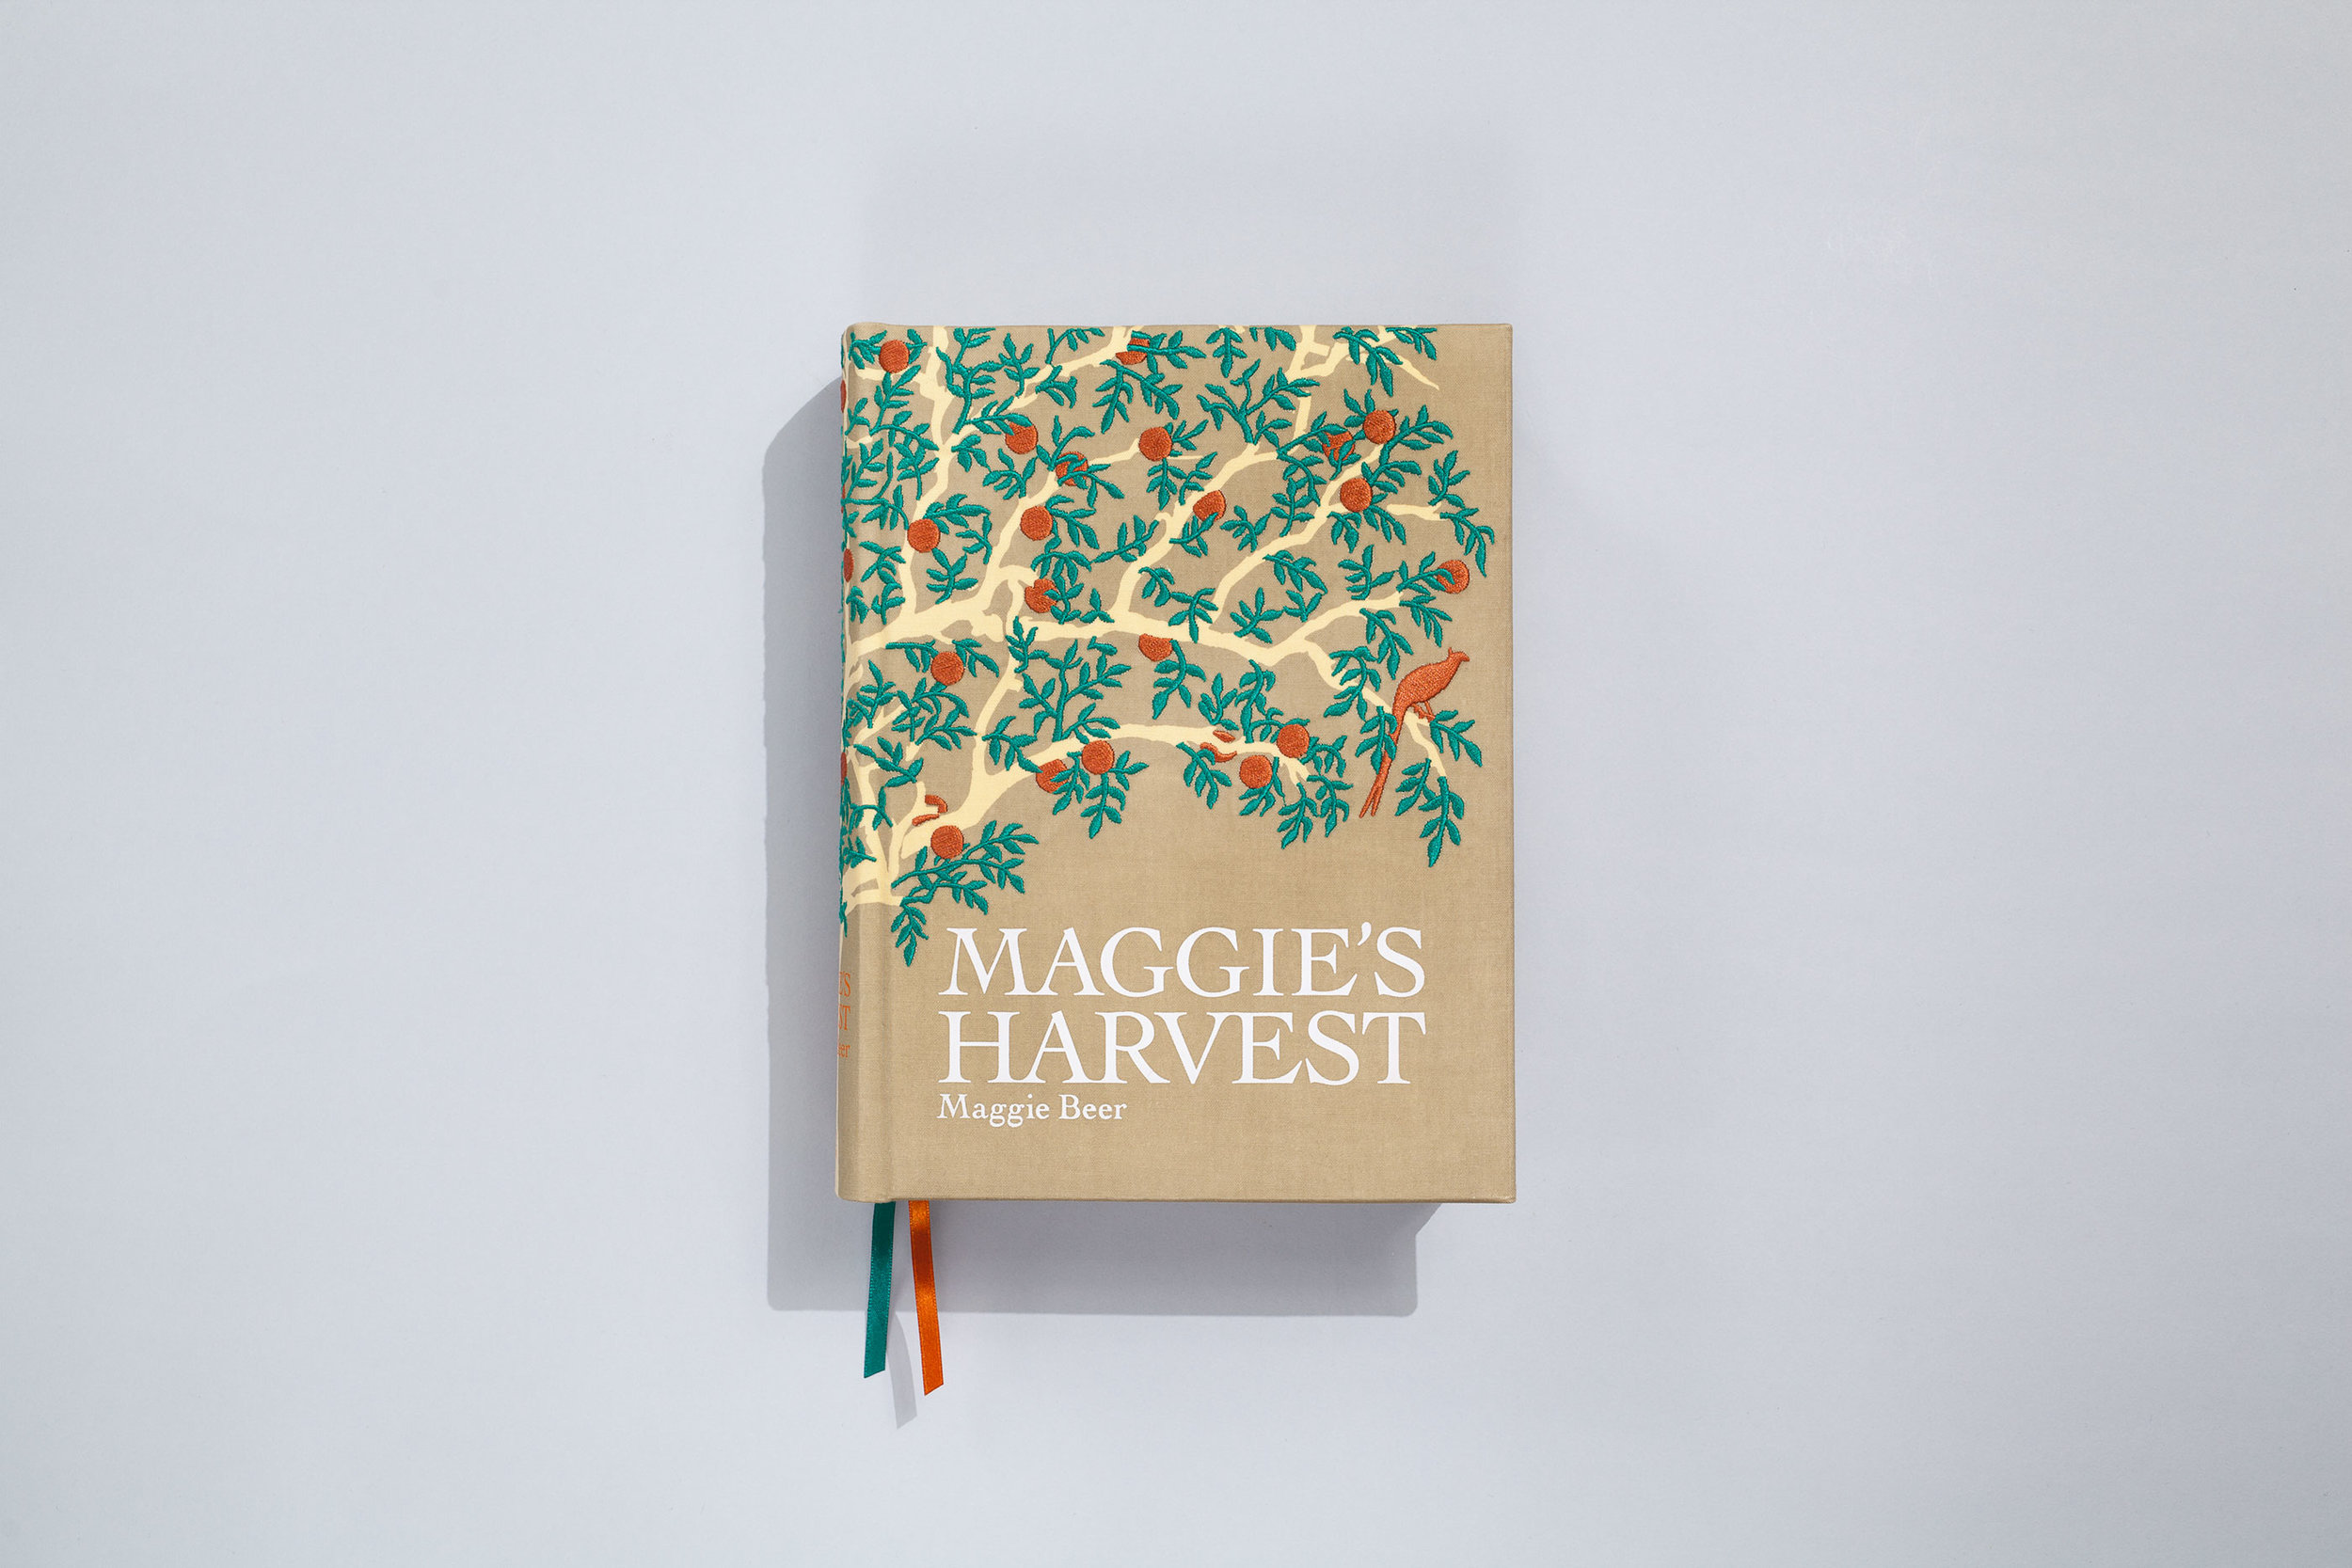 Title – Maggie's Harvest Author – Maggie Beer Designer/Illustrator – Daniel New Photographer – Mark Chew Publisher – Lantern, Penguin Books  2007 APA Design Awards  +  Best Designed General Illustrated Book 2007 Gourmand World Cookbook Awards  +  Best Cookbook  +  Best Cookbook Cover 2007 Kinokuniya Book Awards  +  Best Cookbook of the Year 2008 Australian Book Industry Awards  +  Best Illustrated Book